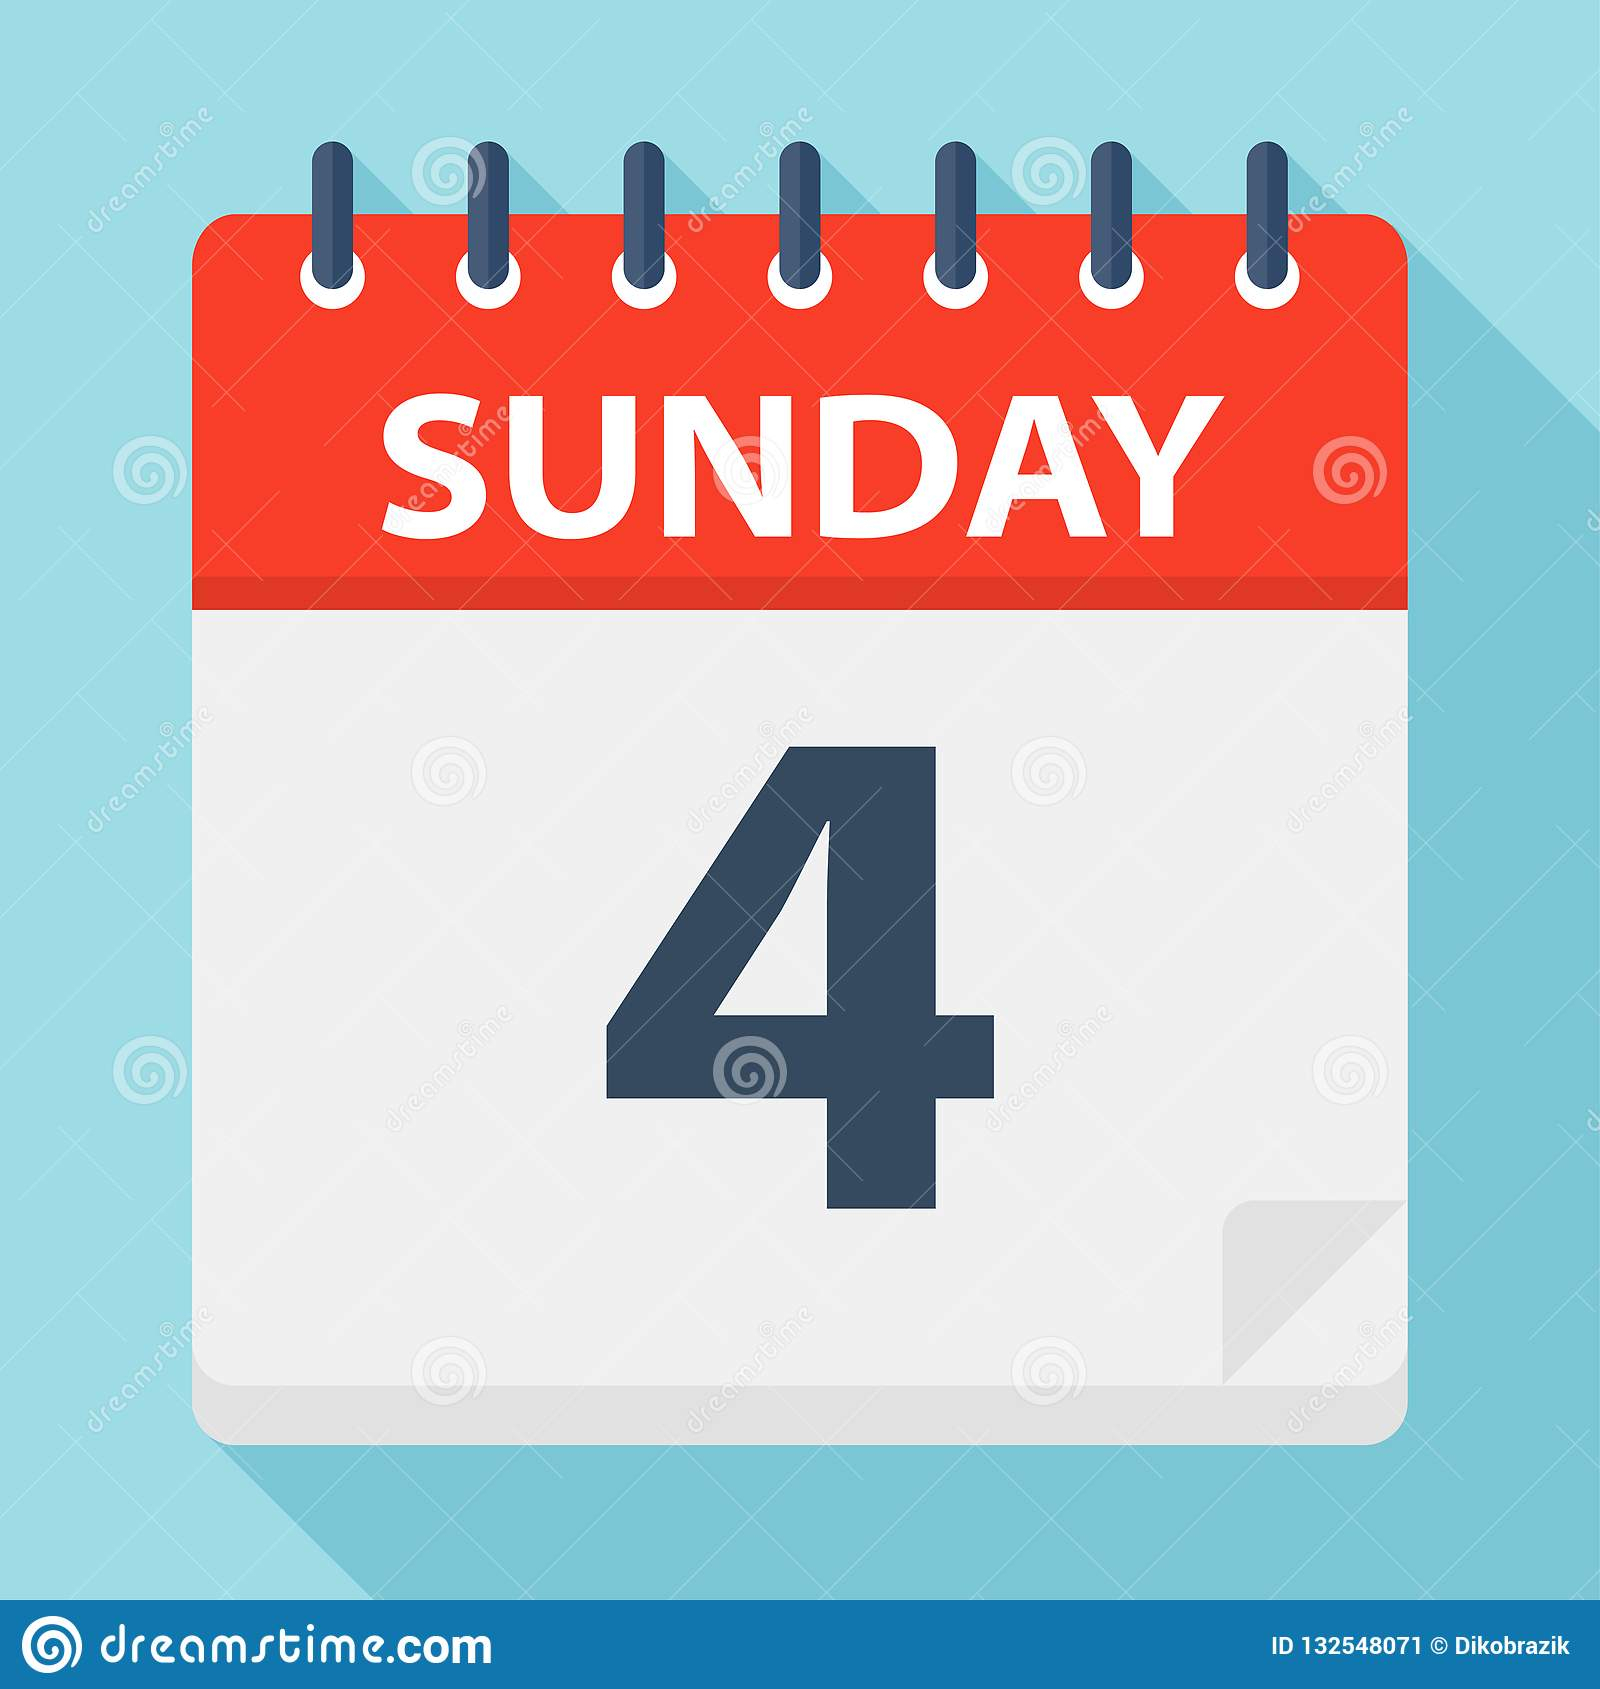 Sunday 4 - Calendar Icon. Vector Illustration Of Week Day